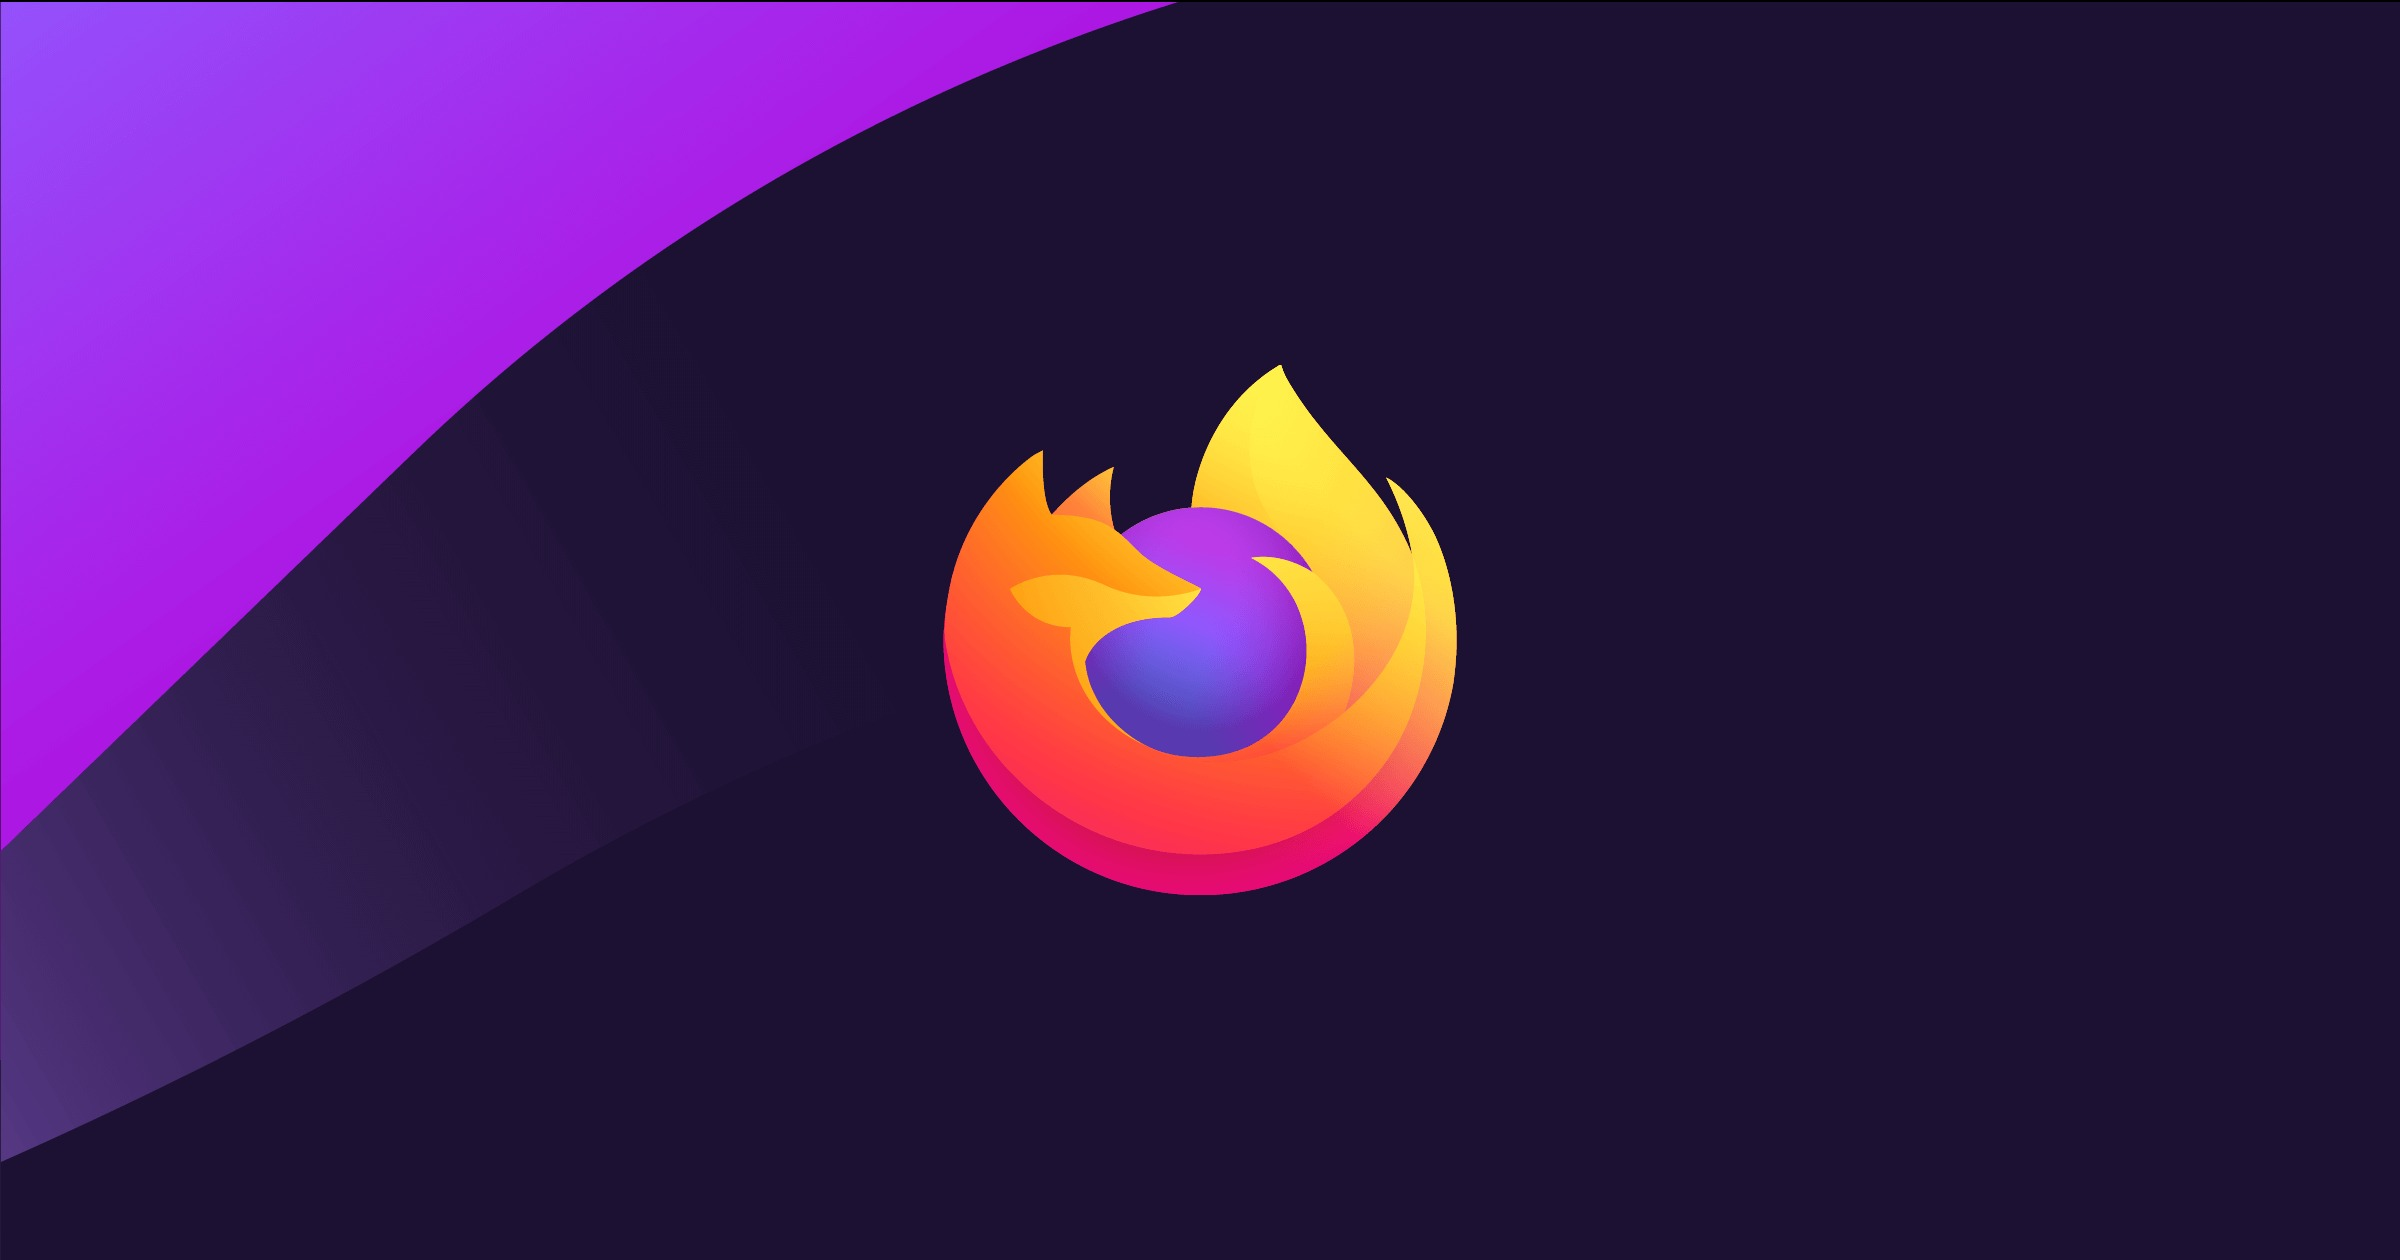 Firefox 84 on Android released with grid view for tabs, plus more